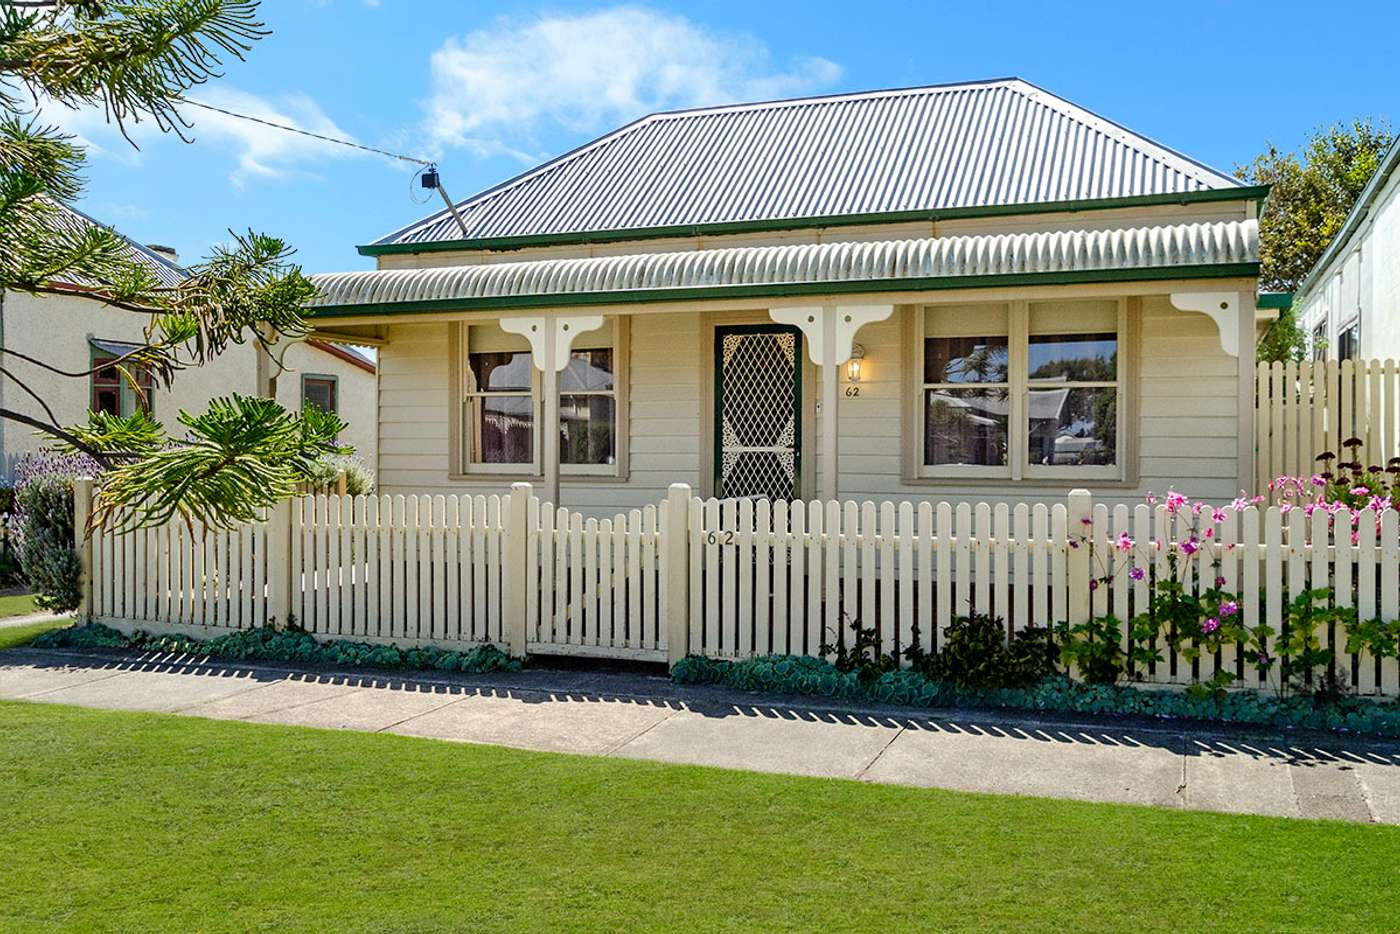 Main view of Homely house listing, 62 Gawler Street, Portland VIC 3305